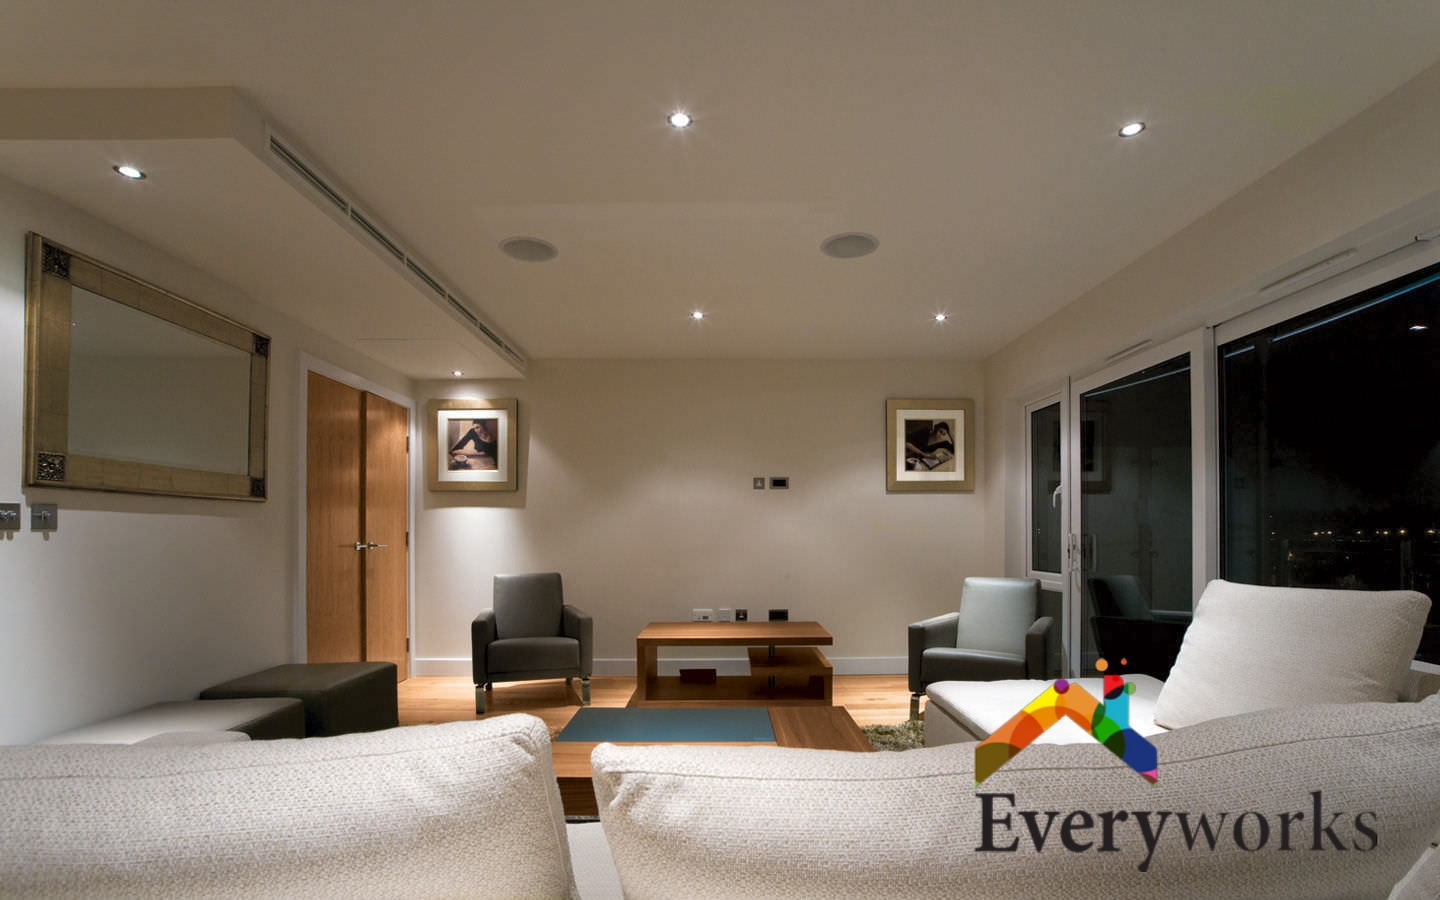 living-room-downlight-lighting-installation-everyworks-electrician-singapore